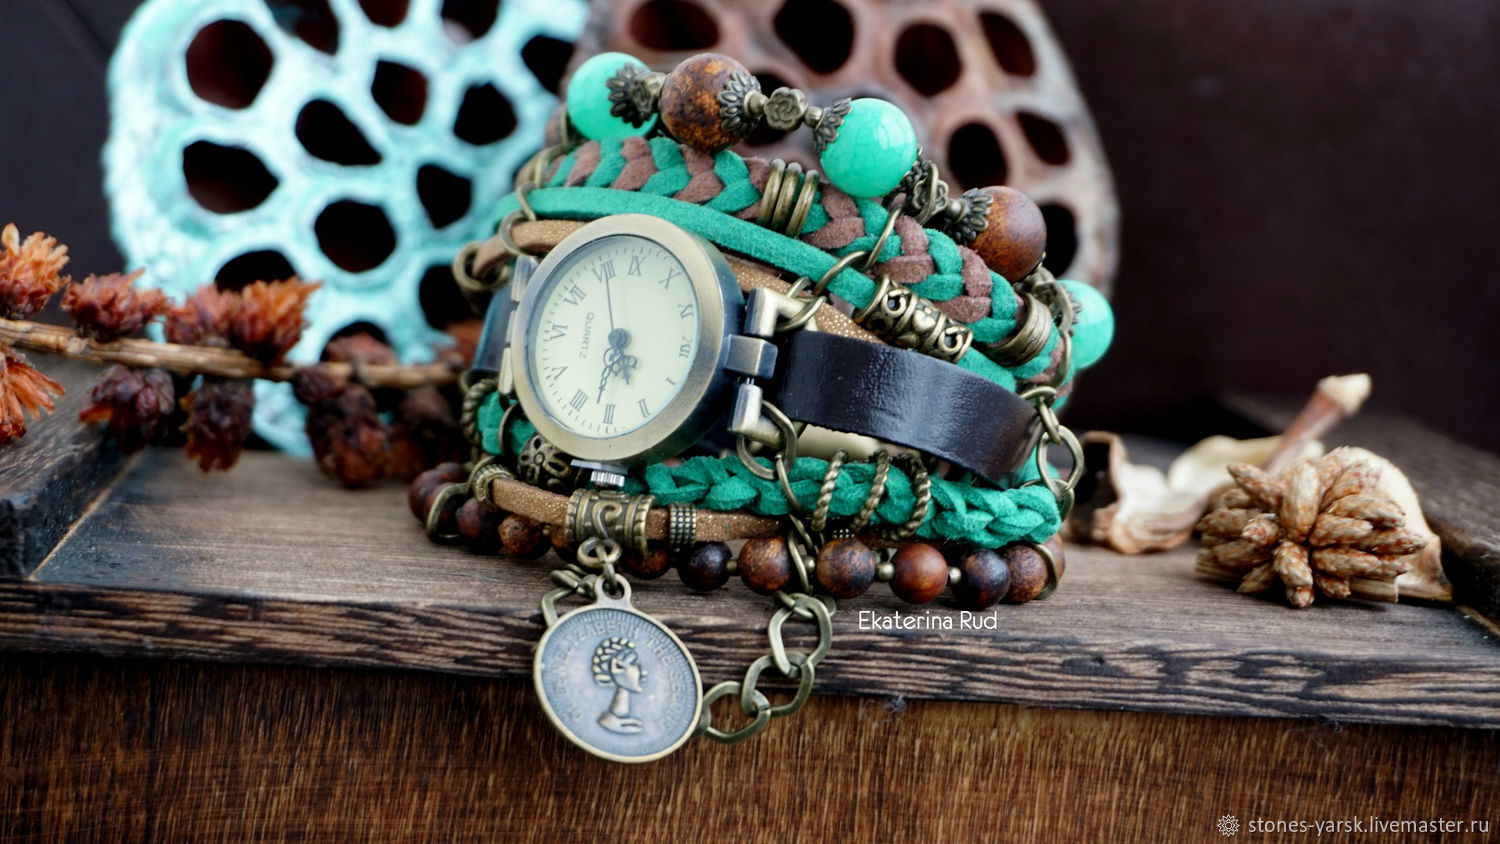 Stylish leather wrist watch with Jasper ' Best time', Watches, Moscow,  Фото №1